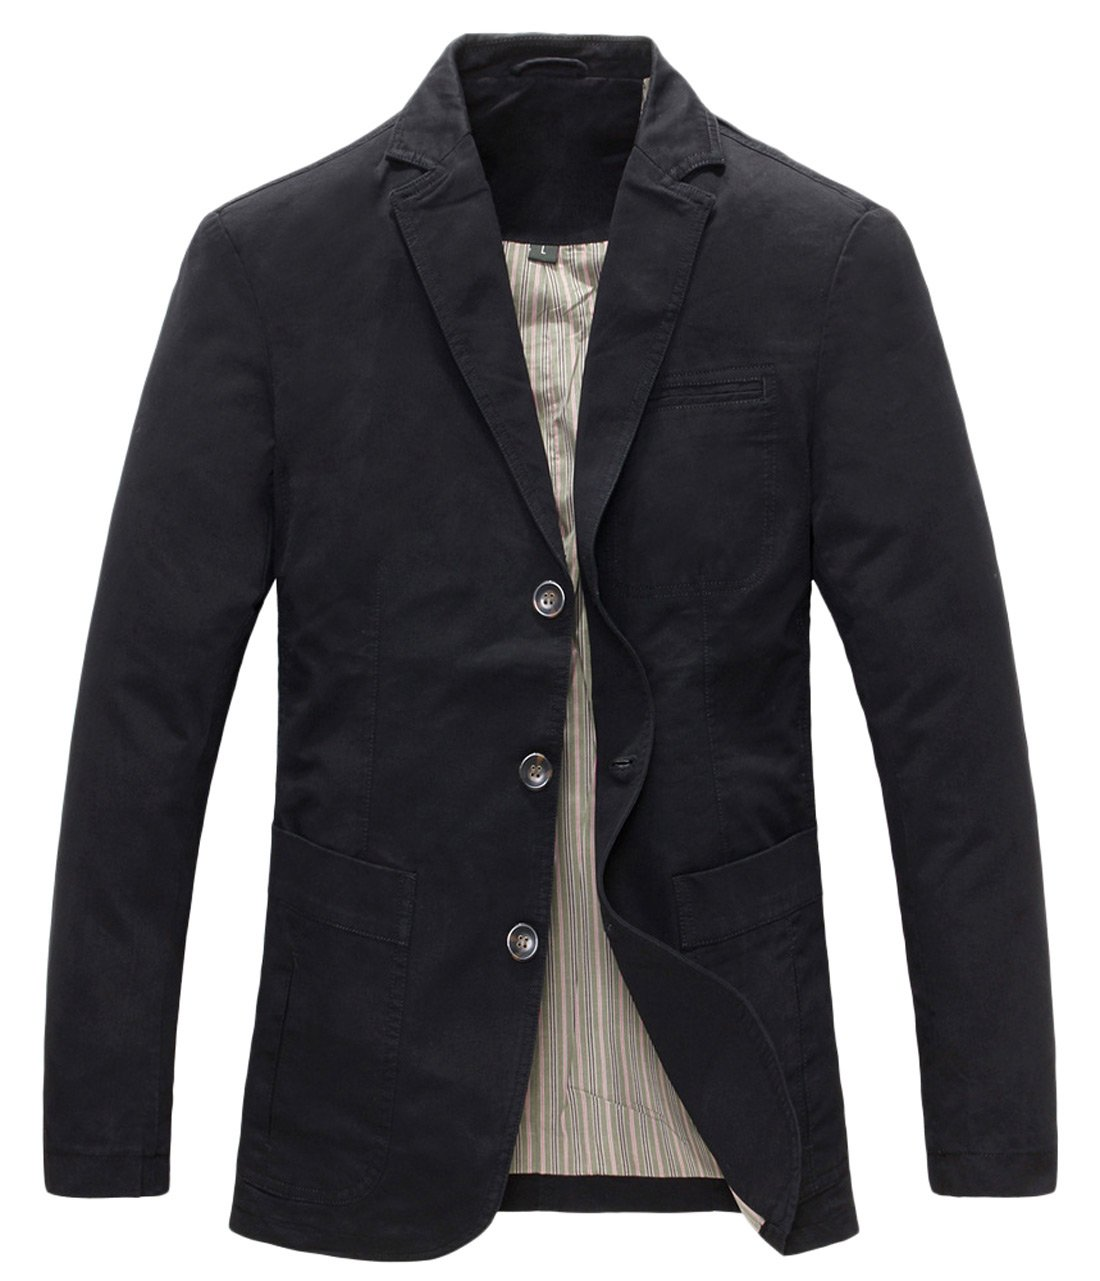 Chouyatou Men's Casual Three-Button Stripe Lined Cotton Twill Suit Jacket (X-Large, Black)